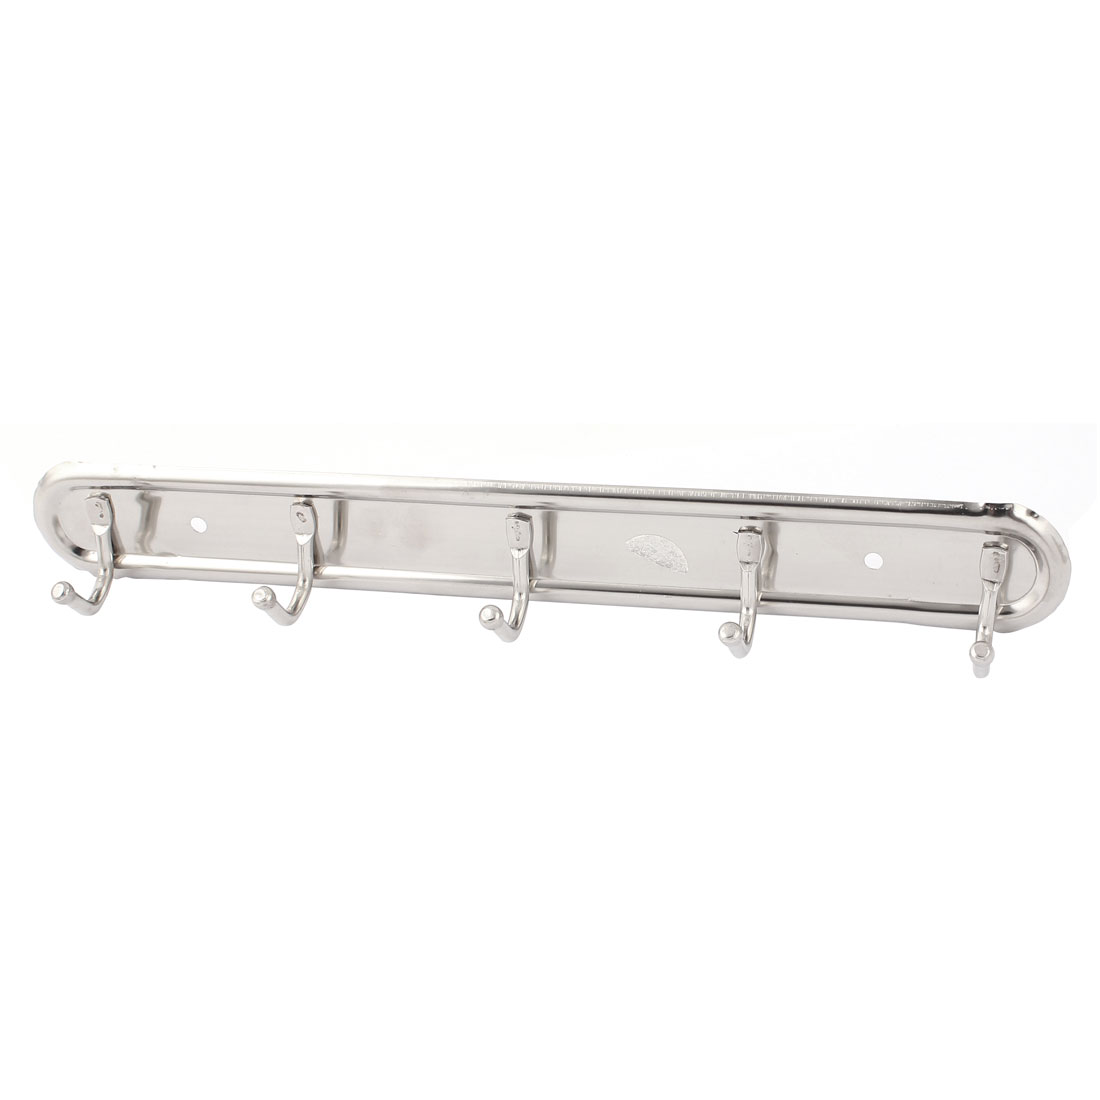 Kitchen Bathroom Wall Mounted Stainless Steel 5 Hooks Towel Hanger Rack